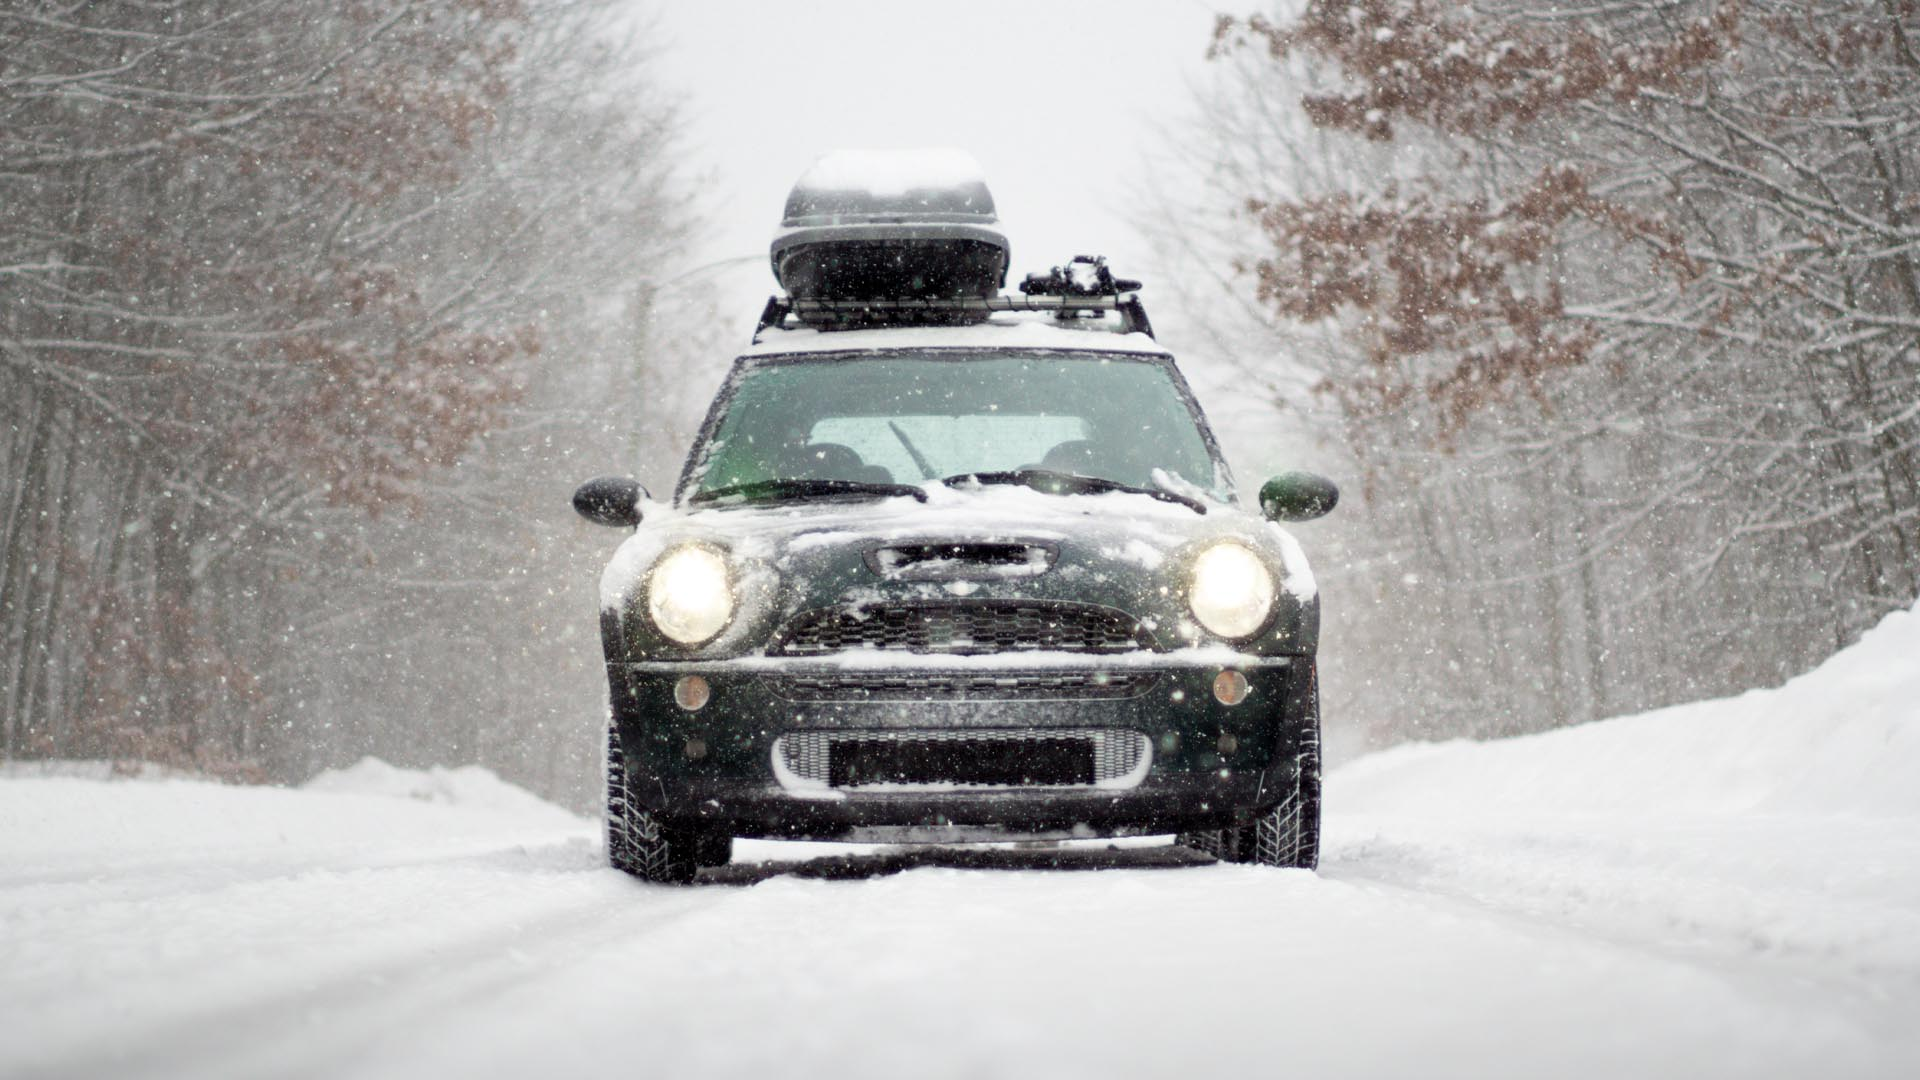 5 Tips For Winterizing Your Car